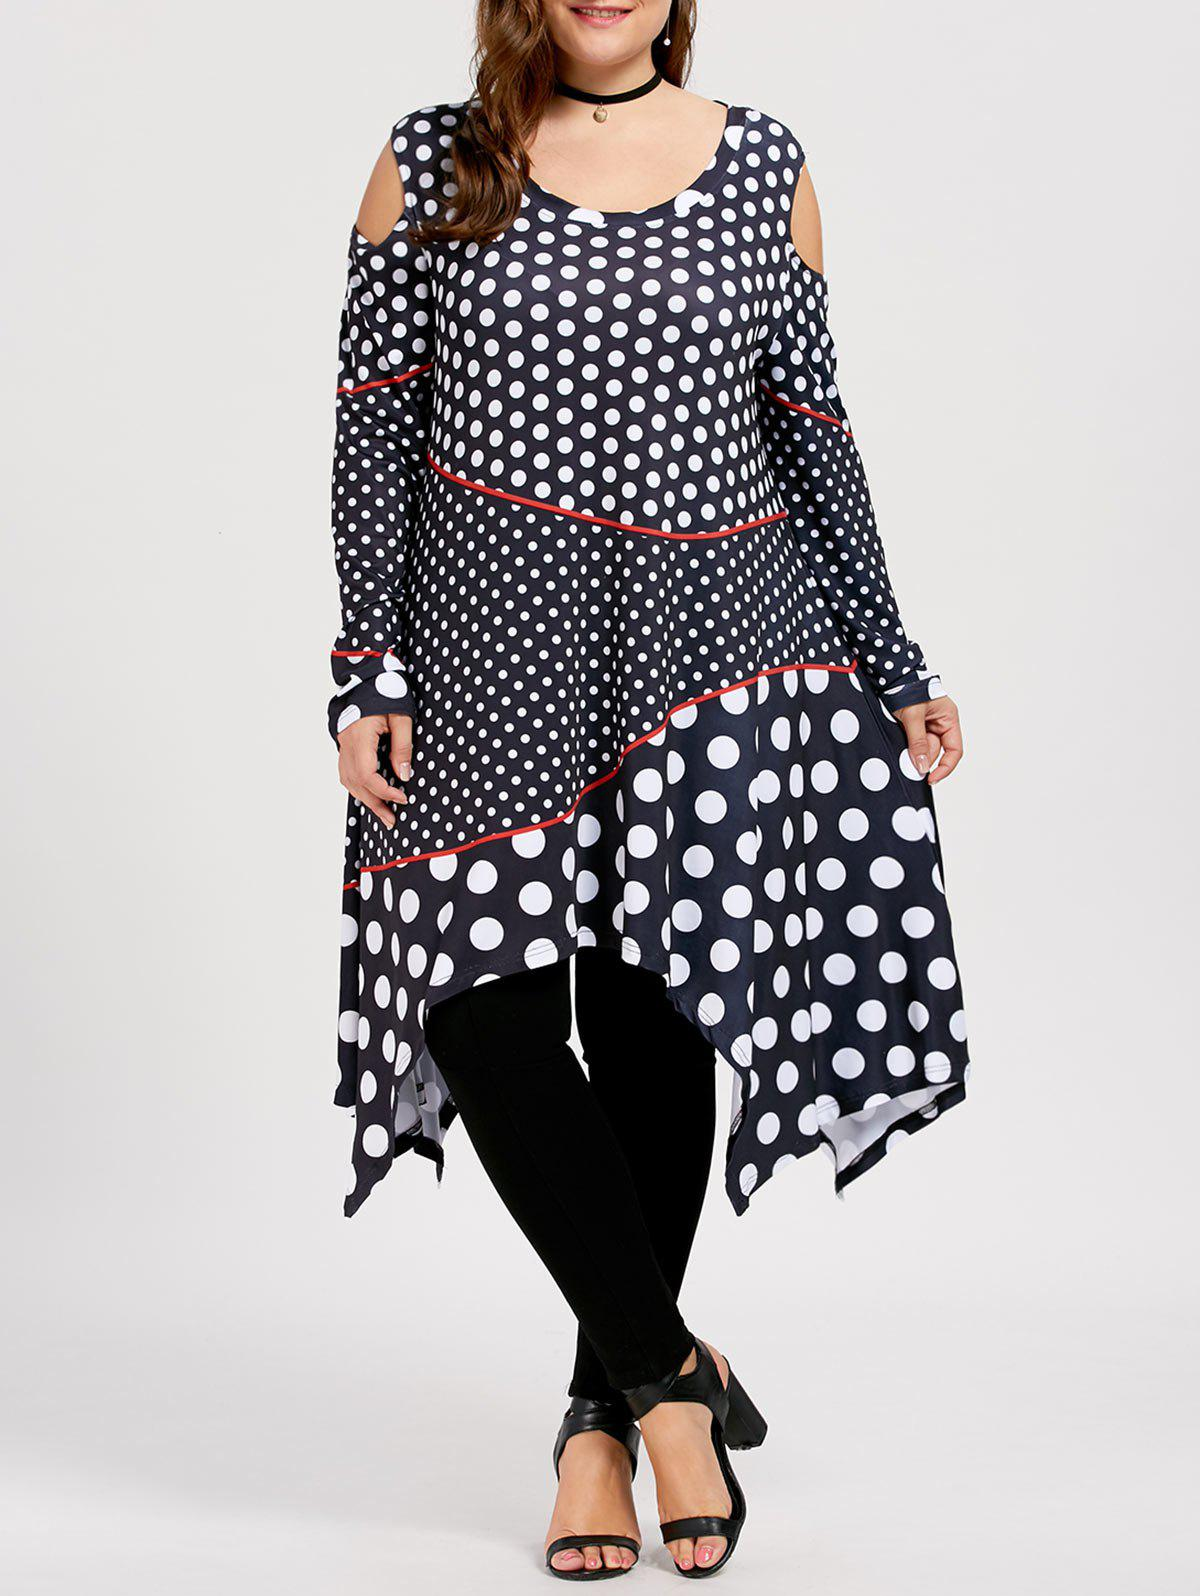 Open Shoulder Plus Size Polka Dot TopWOMEN<br><br>Size: 5XL; Color: BLACK; Material: Polyester; Shirt Length: Long; Sleeve Length: Full; Collar: Round Neck; Style: Fashion; Season: Fall,Spring; Pattern Type: Polka Dot; Weight: 0.4700kg; Package Contents: 1 x Top;